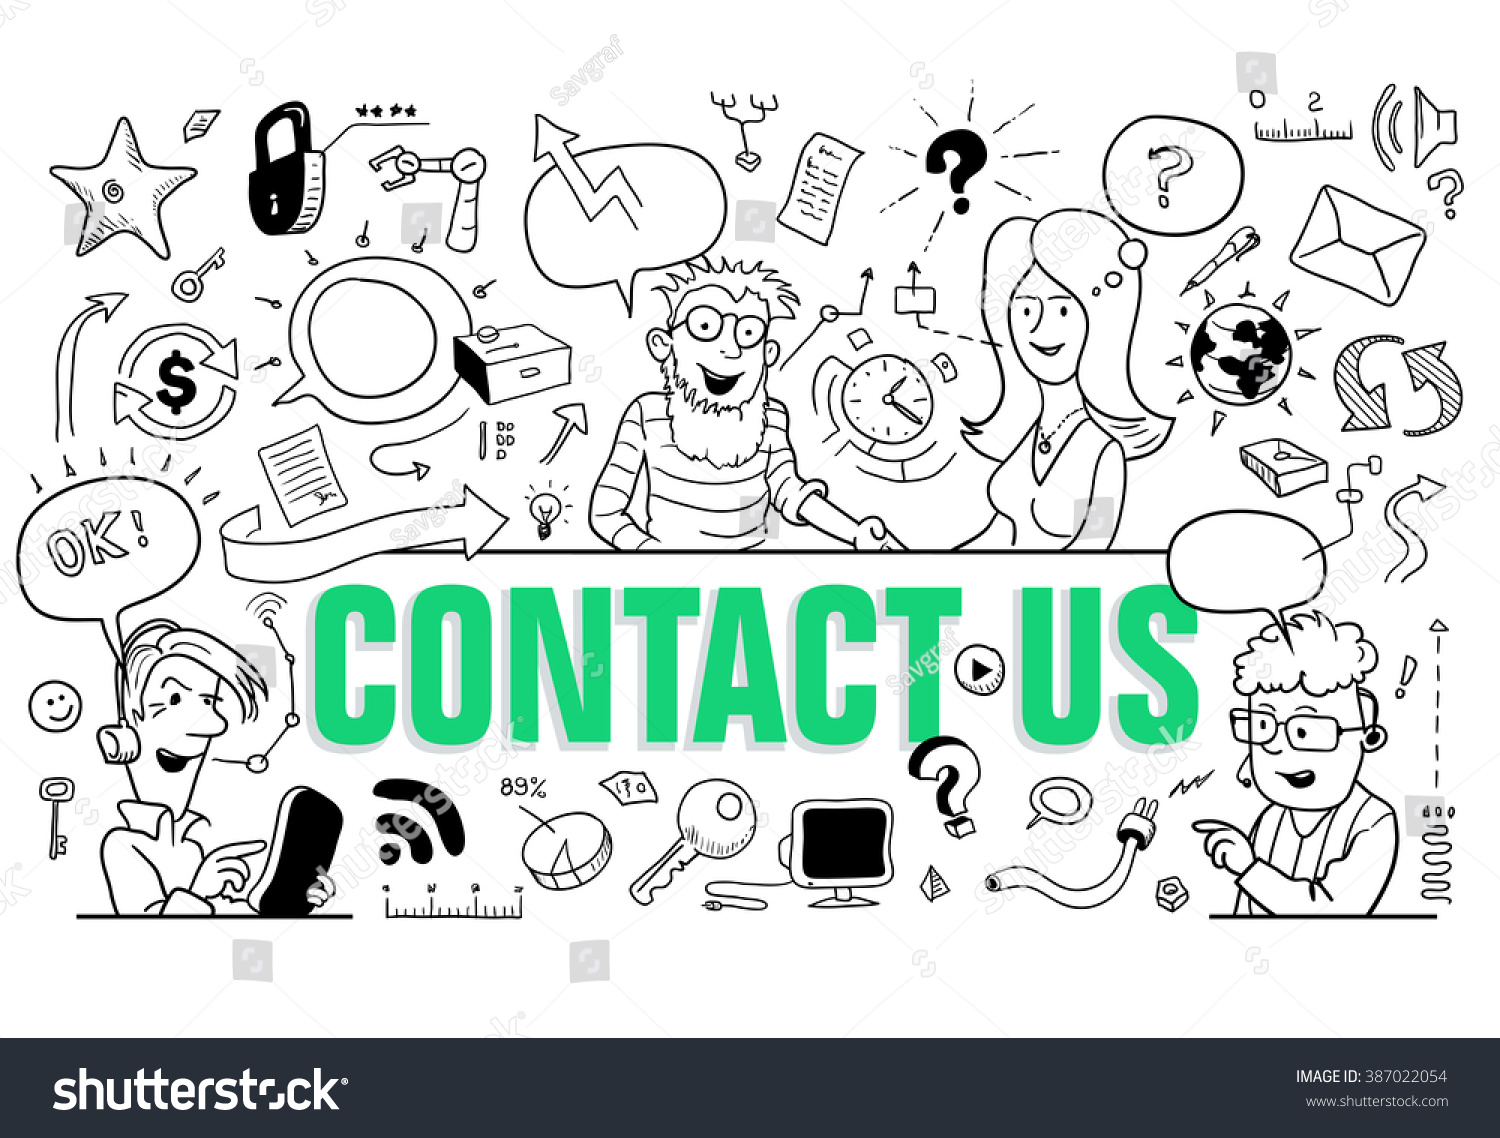 Contact Us Funny >> Green Letters Contact Us Doodle Style Stock Vector Royalty